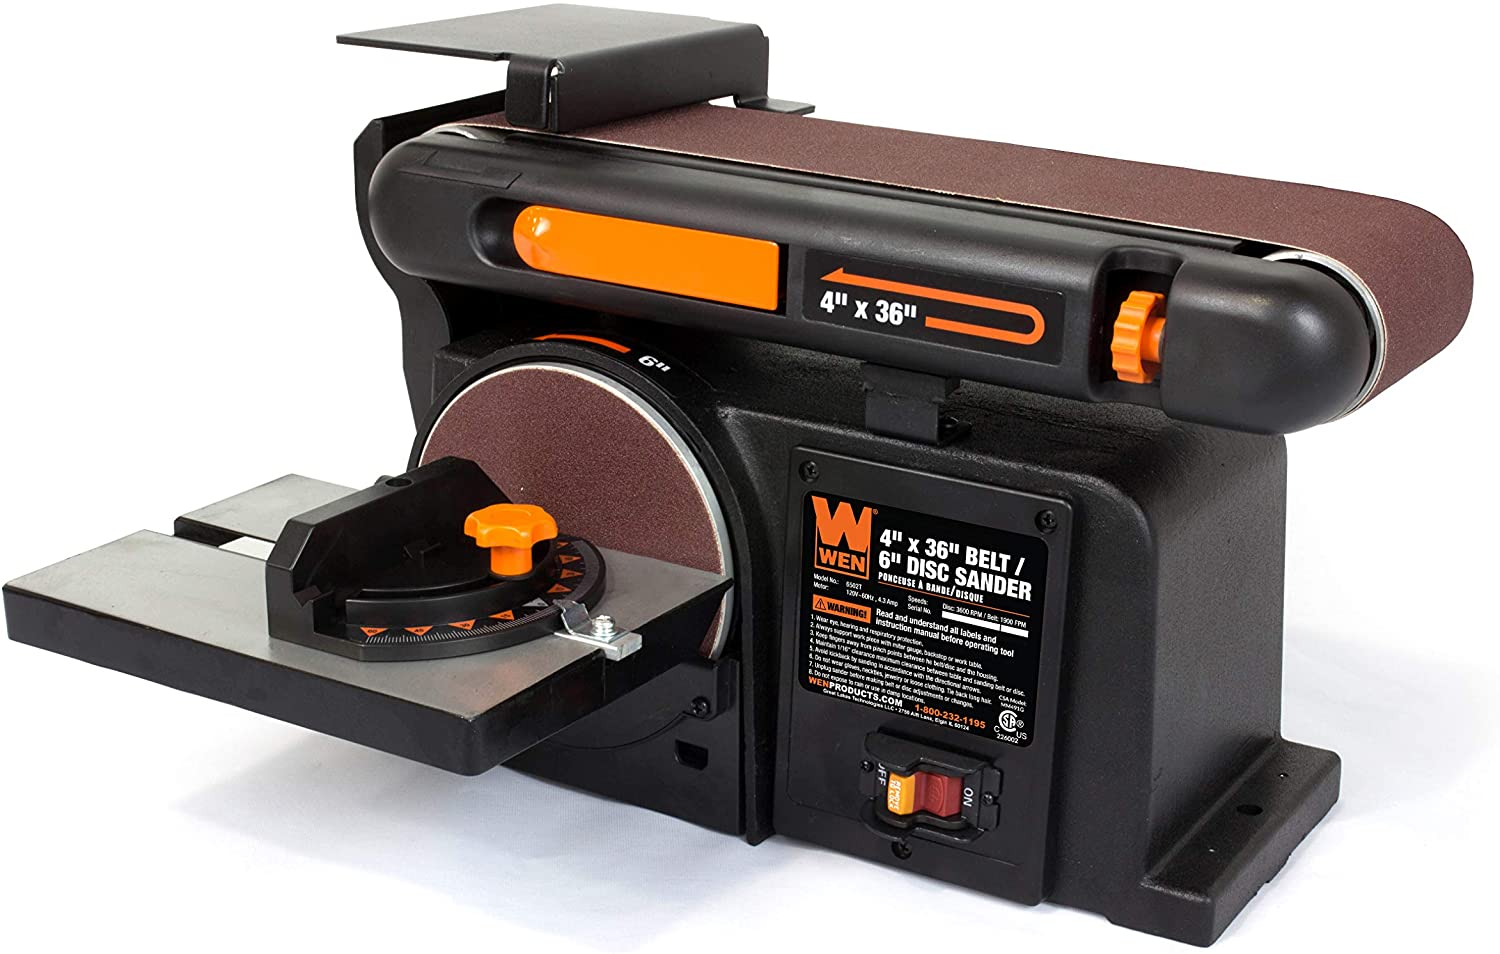 WEN 6502T Bench Belt and Disc Sander with Cast Iron Base